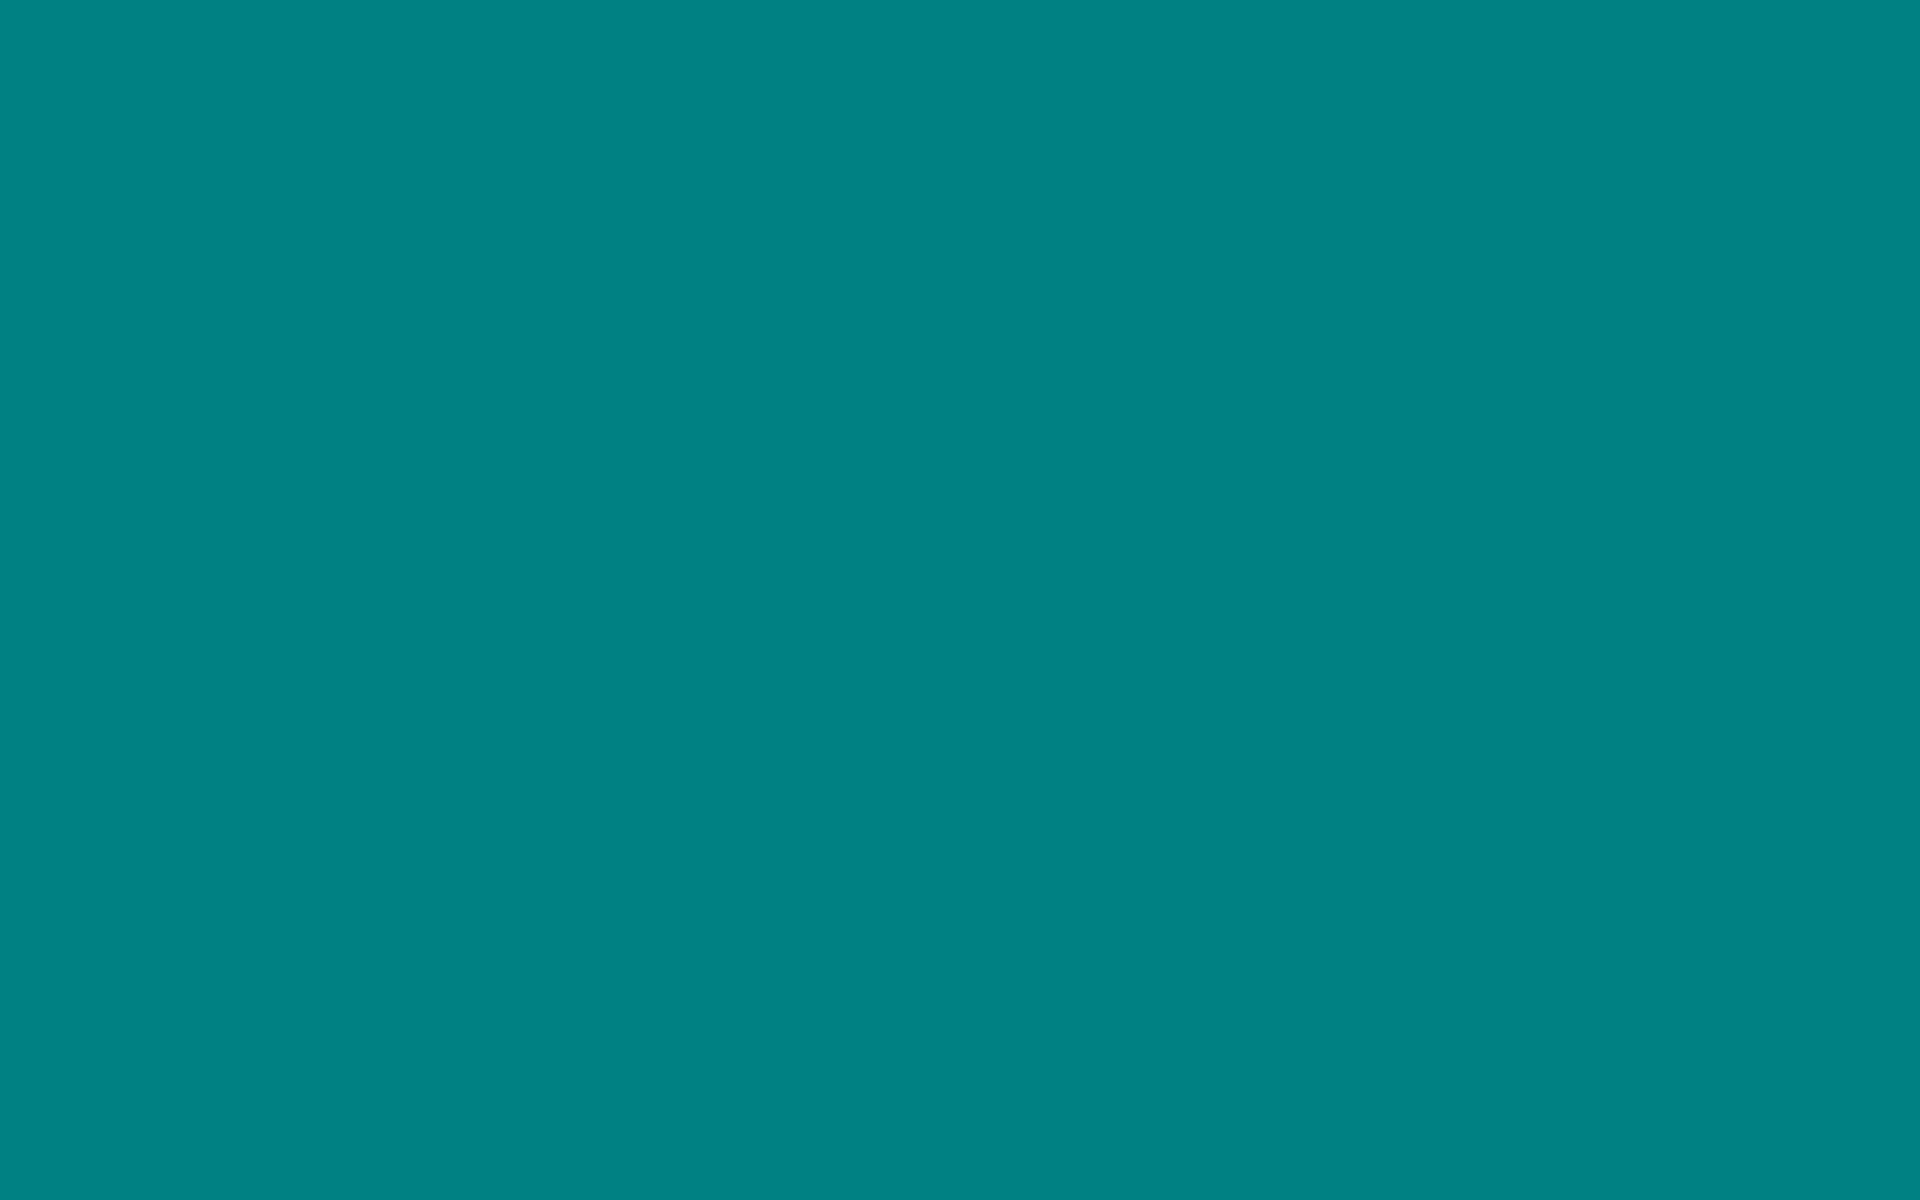 Teal Solid Color Wallpaper 49782 1920x1200 Px HD Wallpapers Download Free Images Wallpaper [1000image.com]